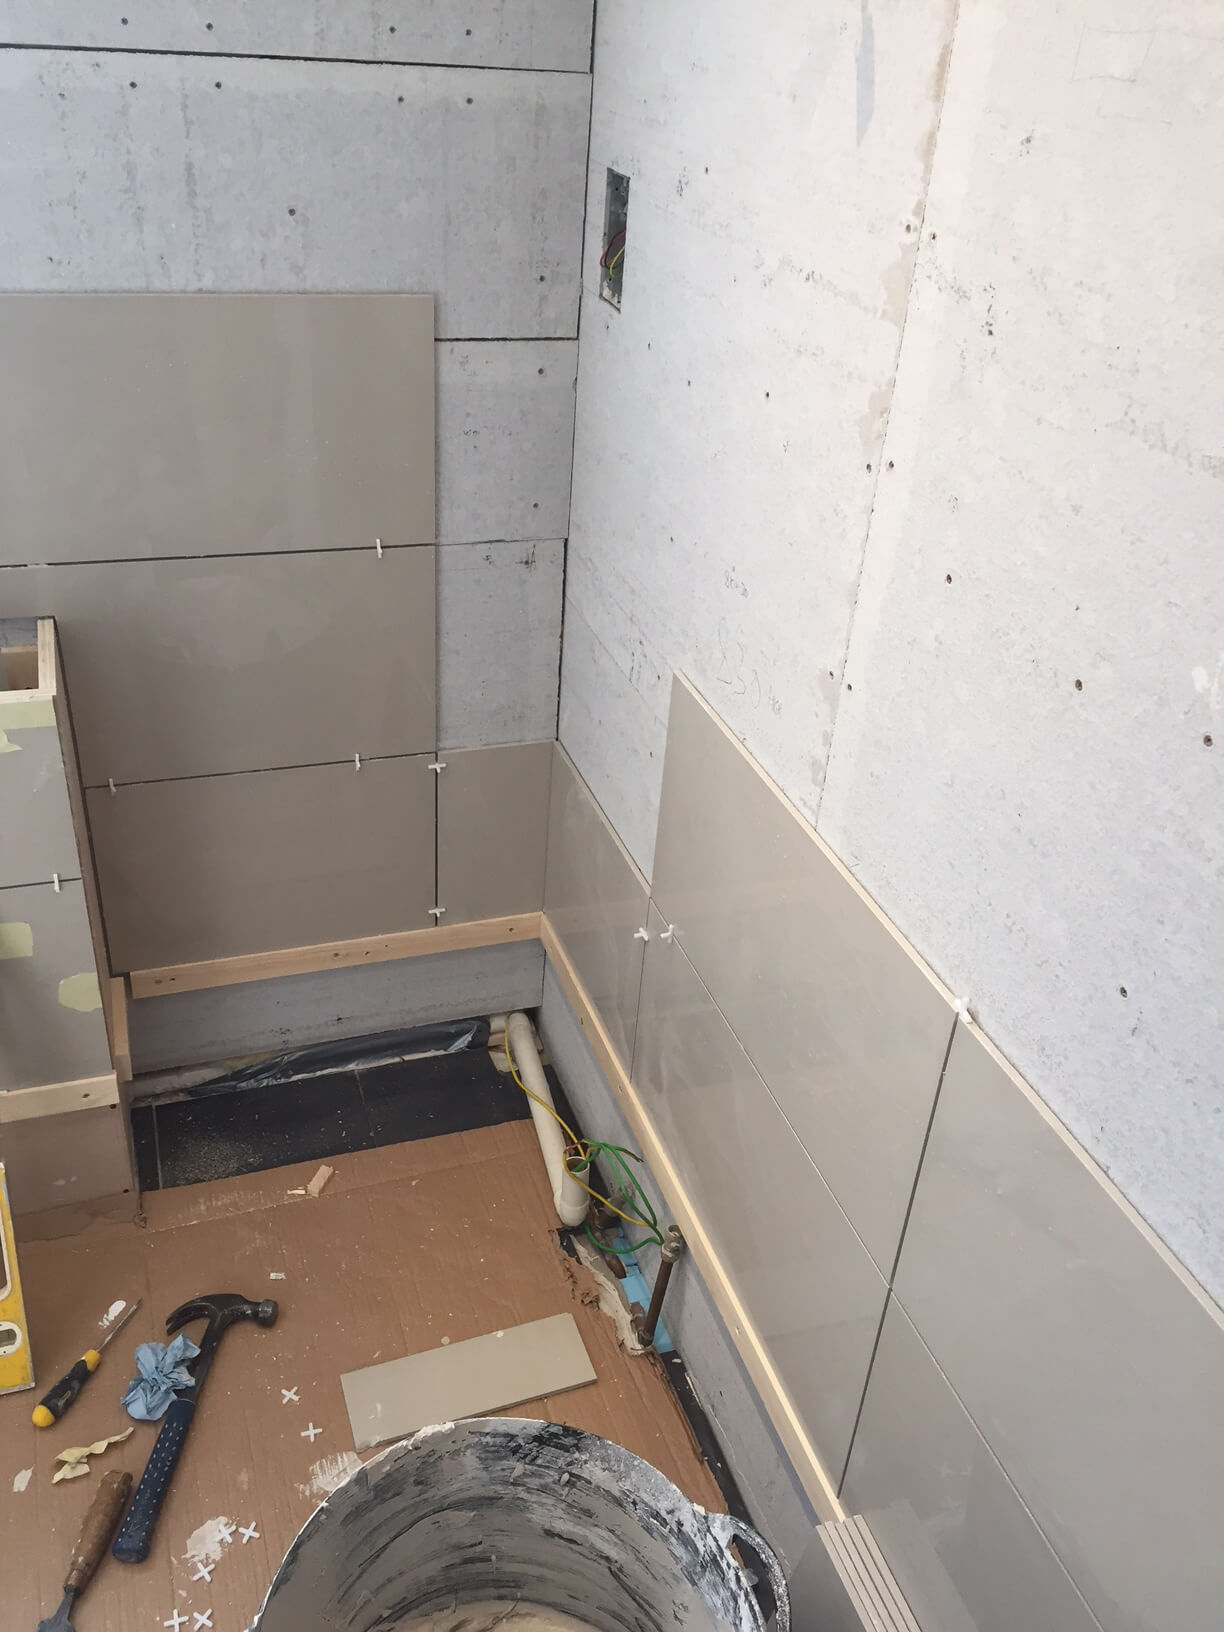 Tiles Connecting Around the Two Walls